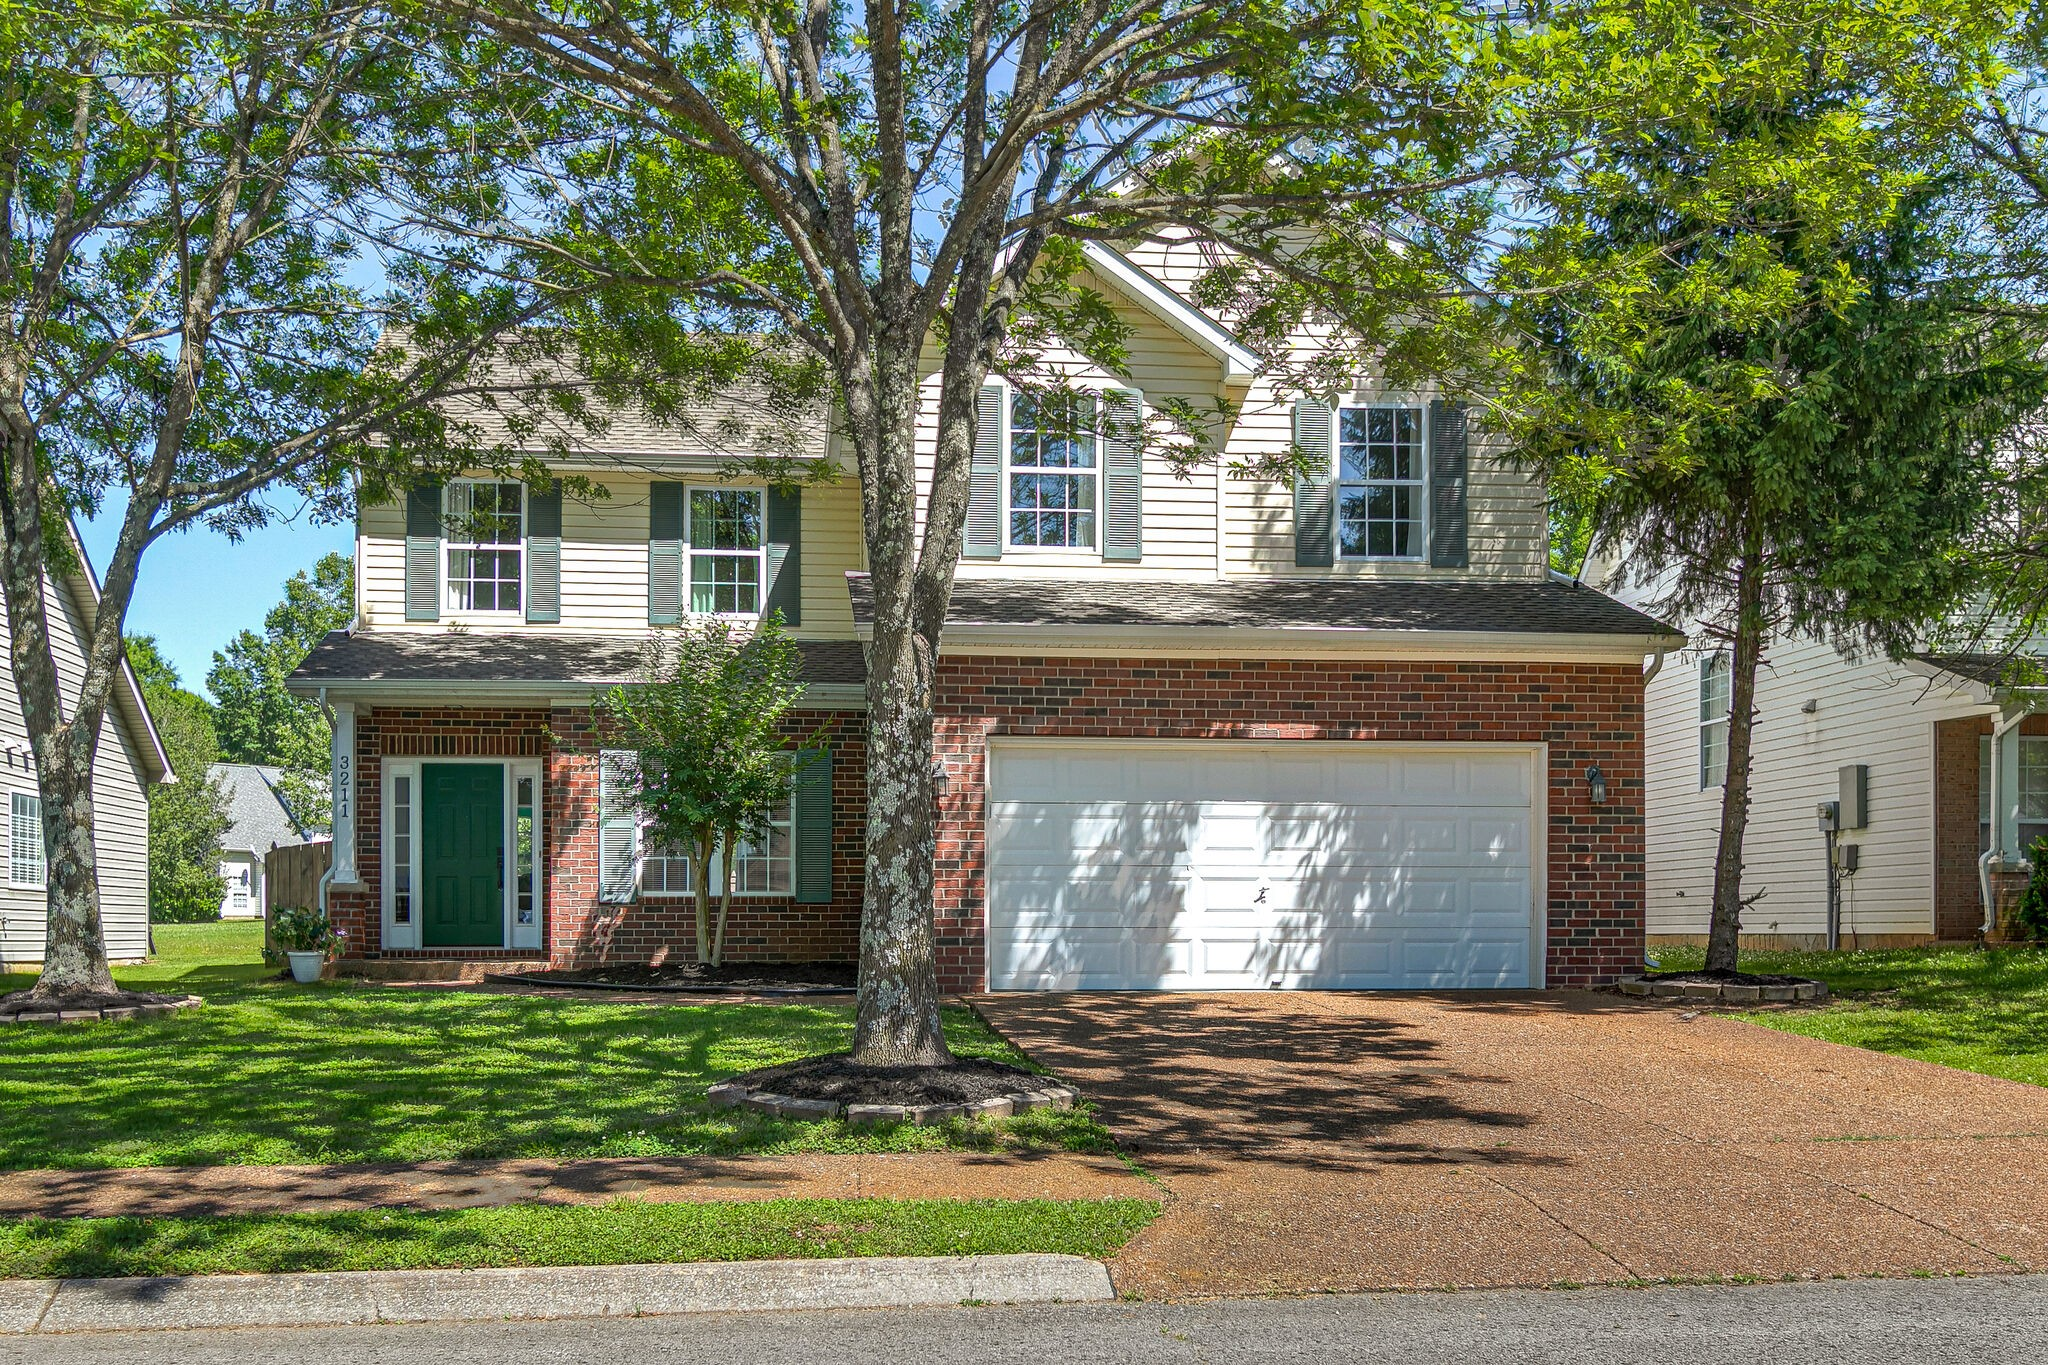 Lovely light-filled home with stylish updates including quartz countertops and stainless appliances. Great lot backing up to green space and just steps from a wooded walking trail. Neighborhood amenities include pool and playground and incredible green spaces in this convenient location near downtown Franklin.